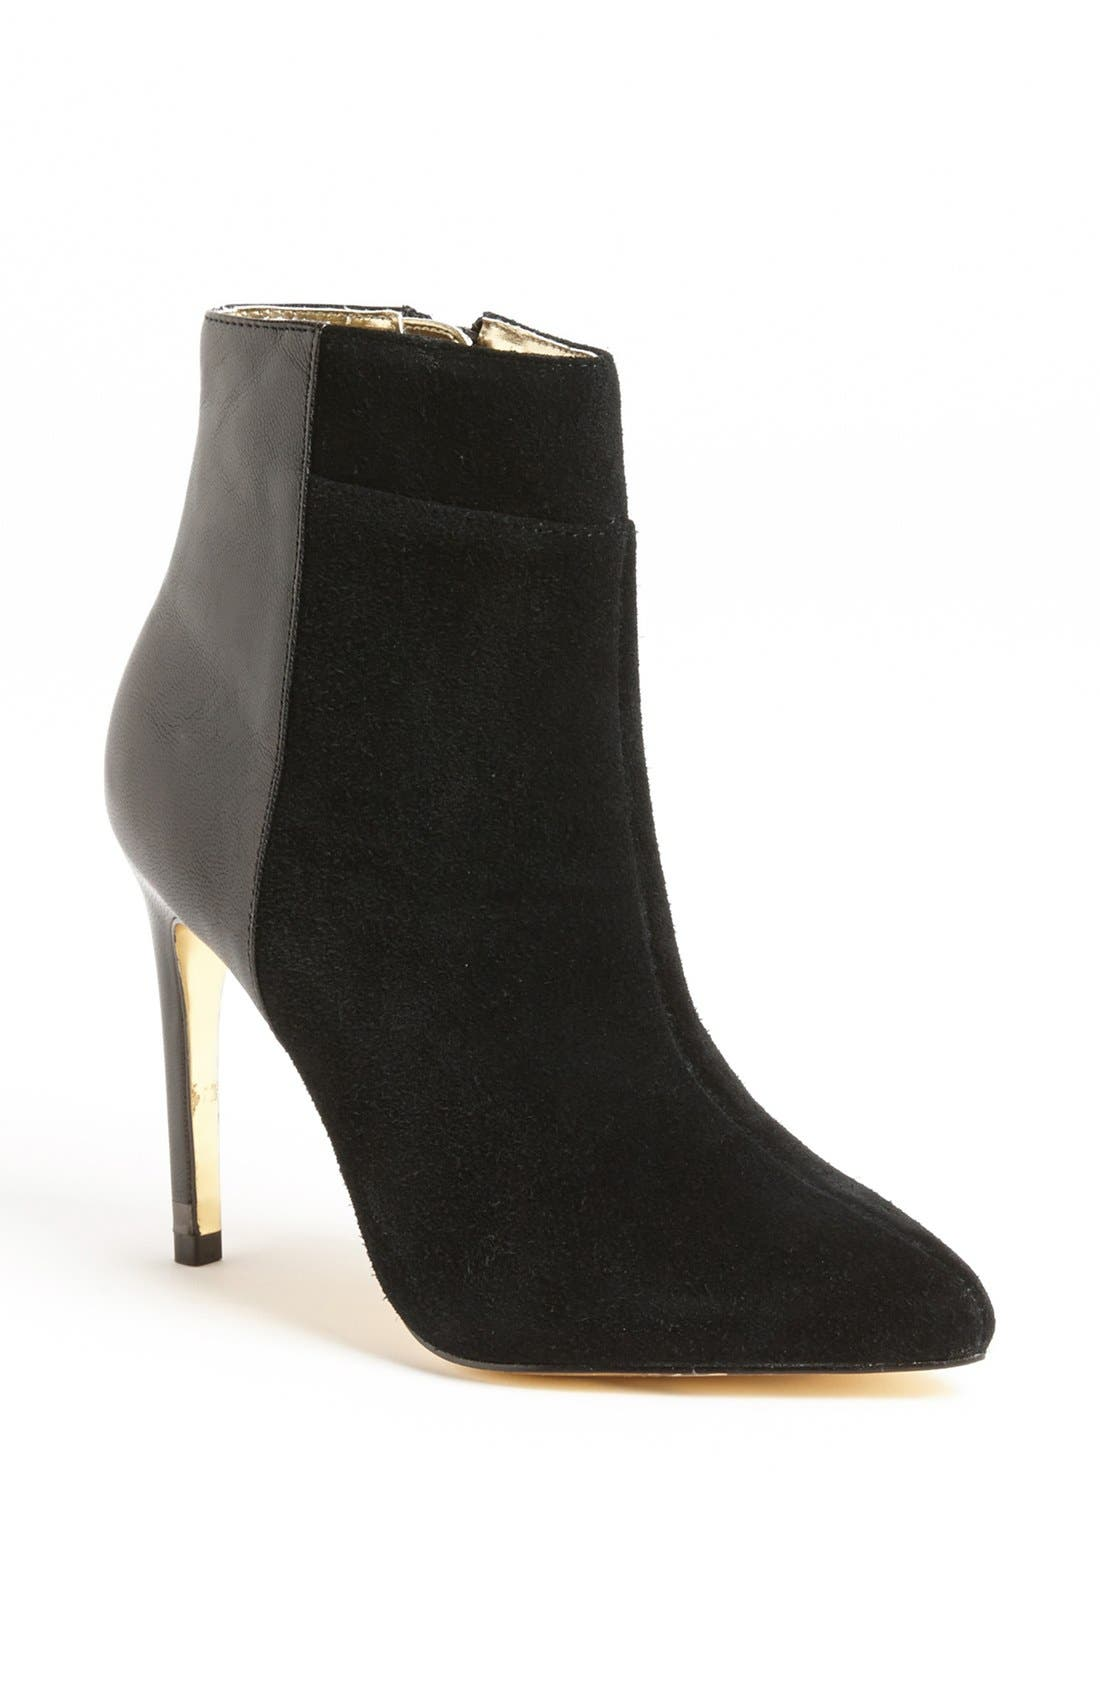 Alternate Image 1 Selected - Ted Baker London 'Frisor' Ankle Bootie